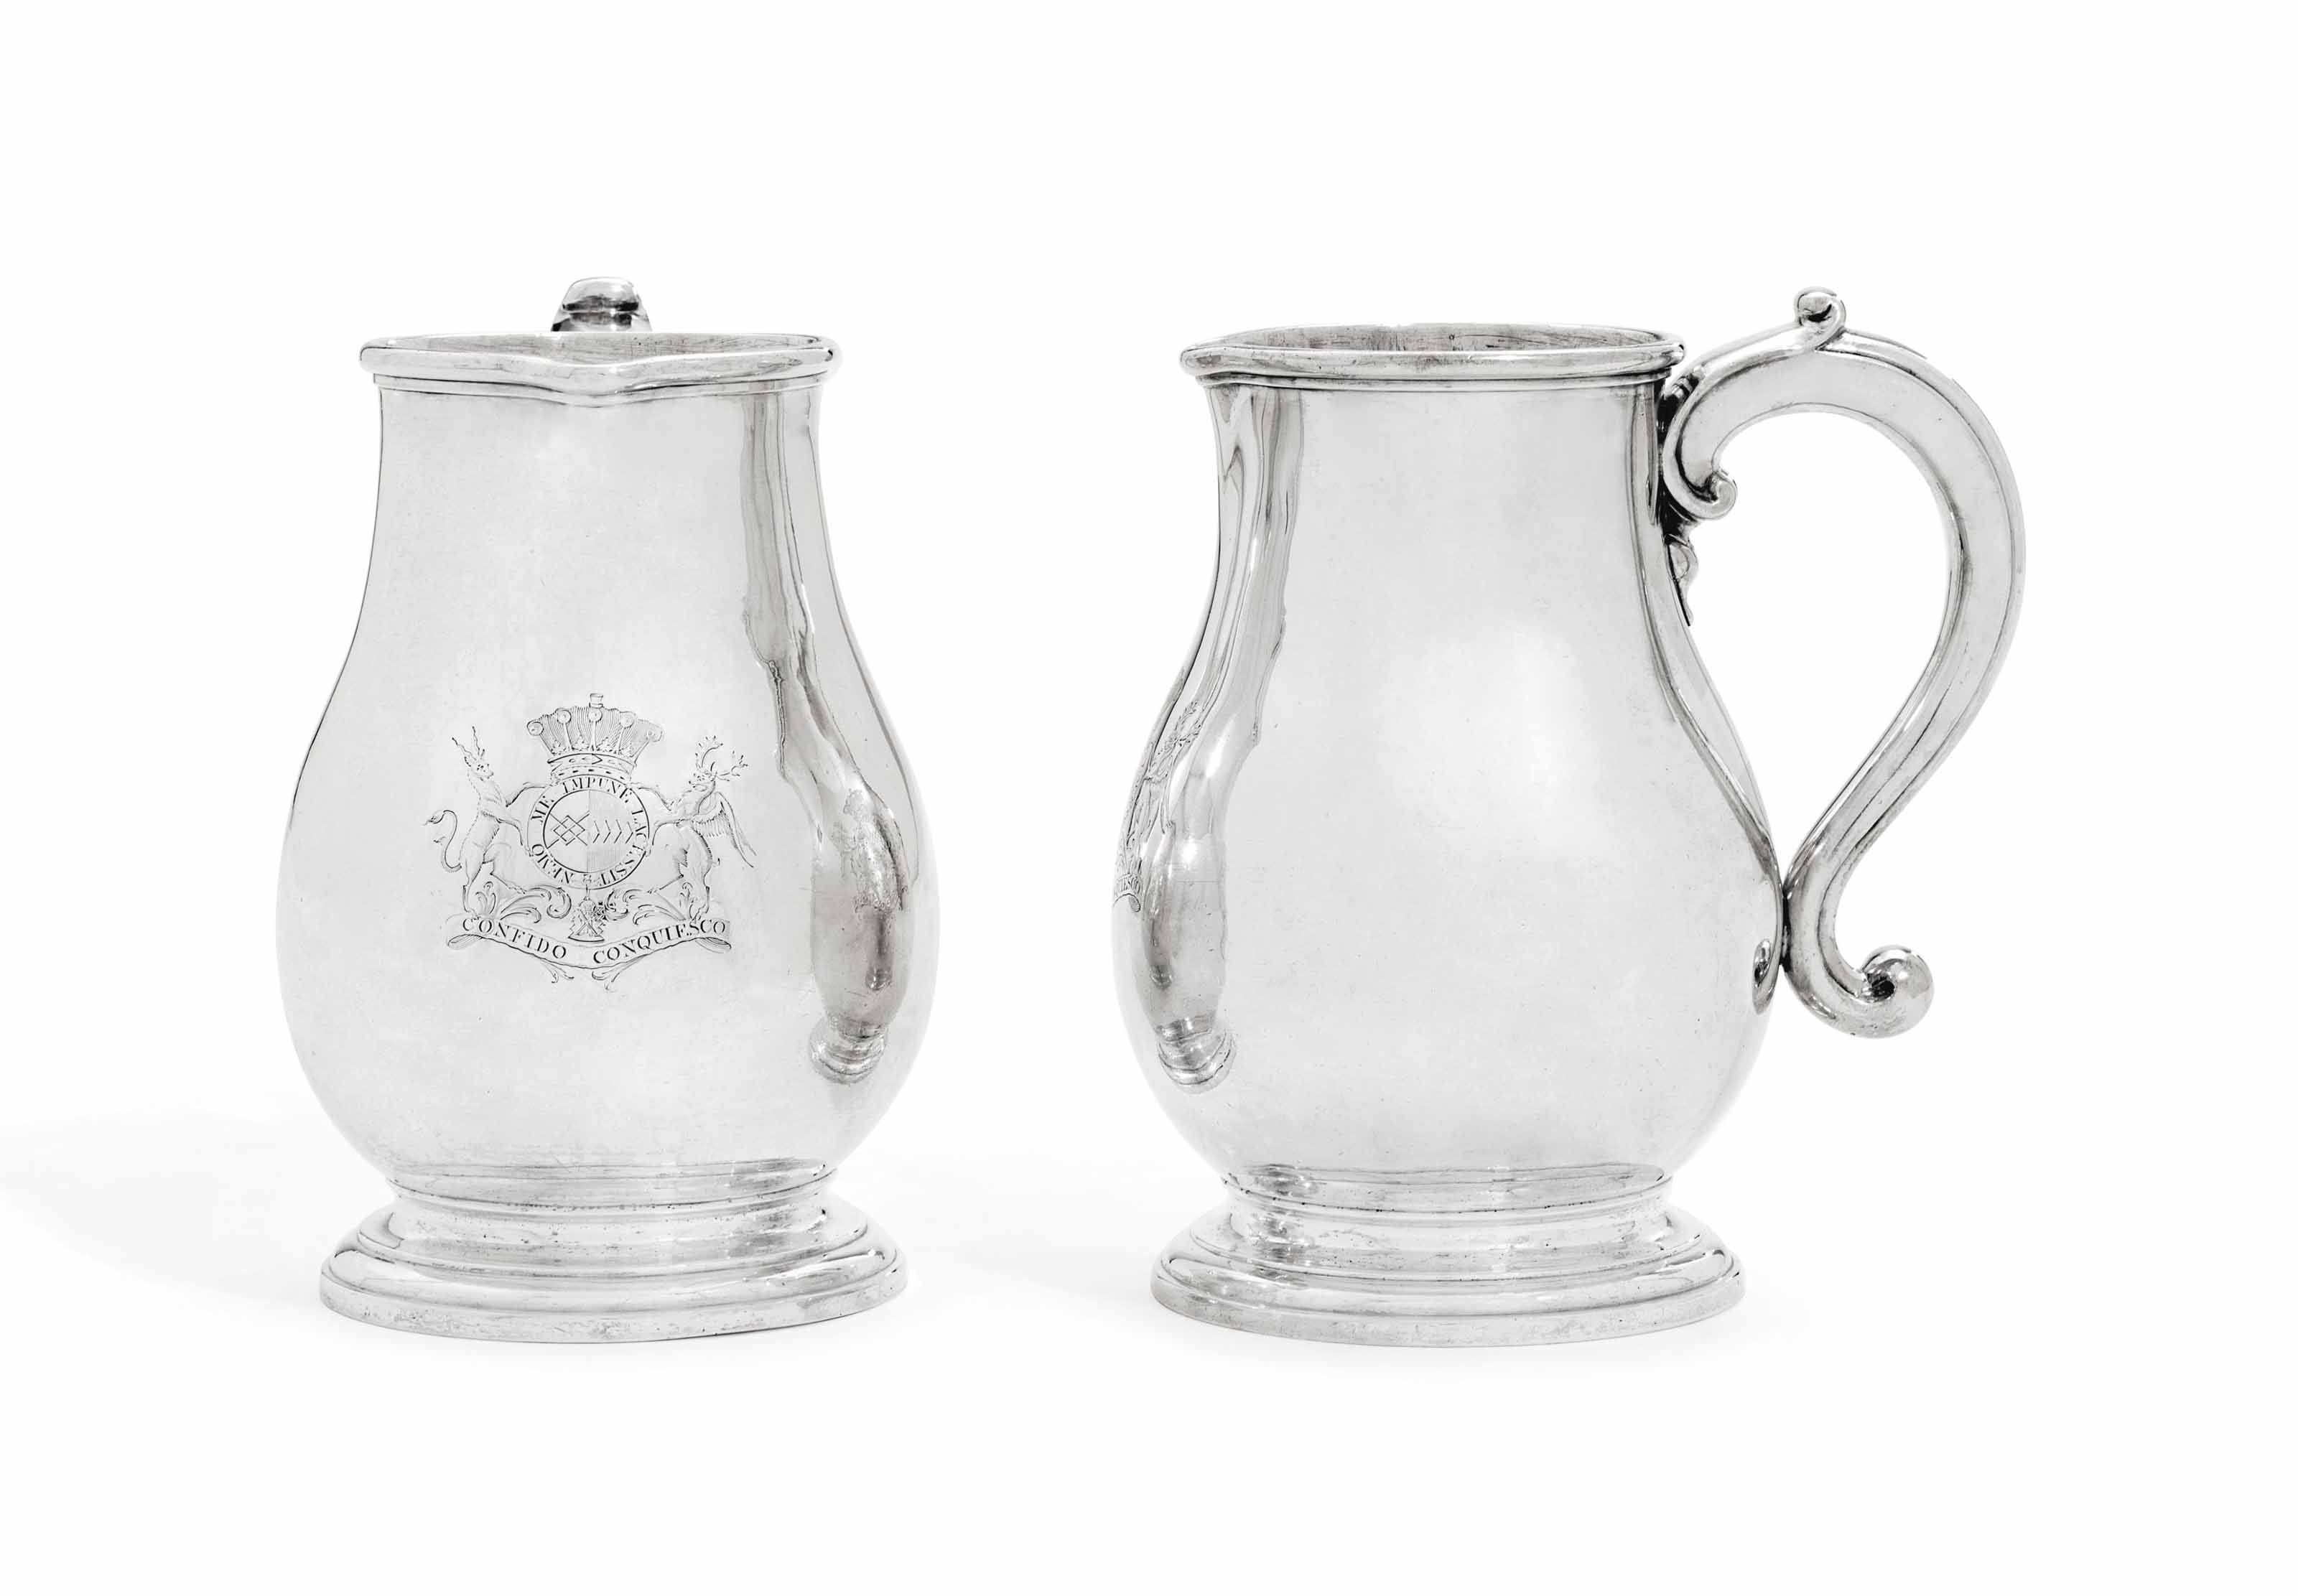 A PAIR OF GEORGE I SILVER BEER-JUGS